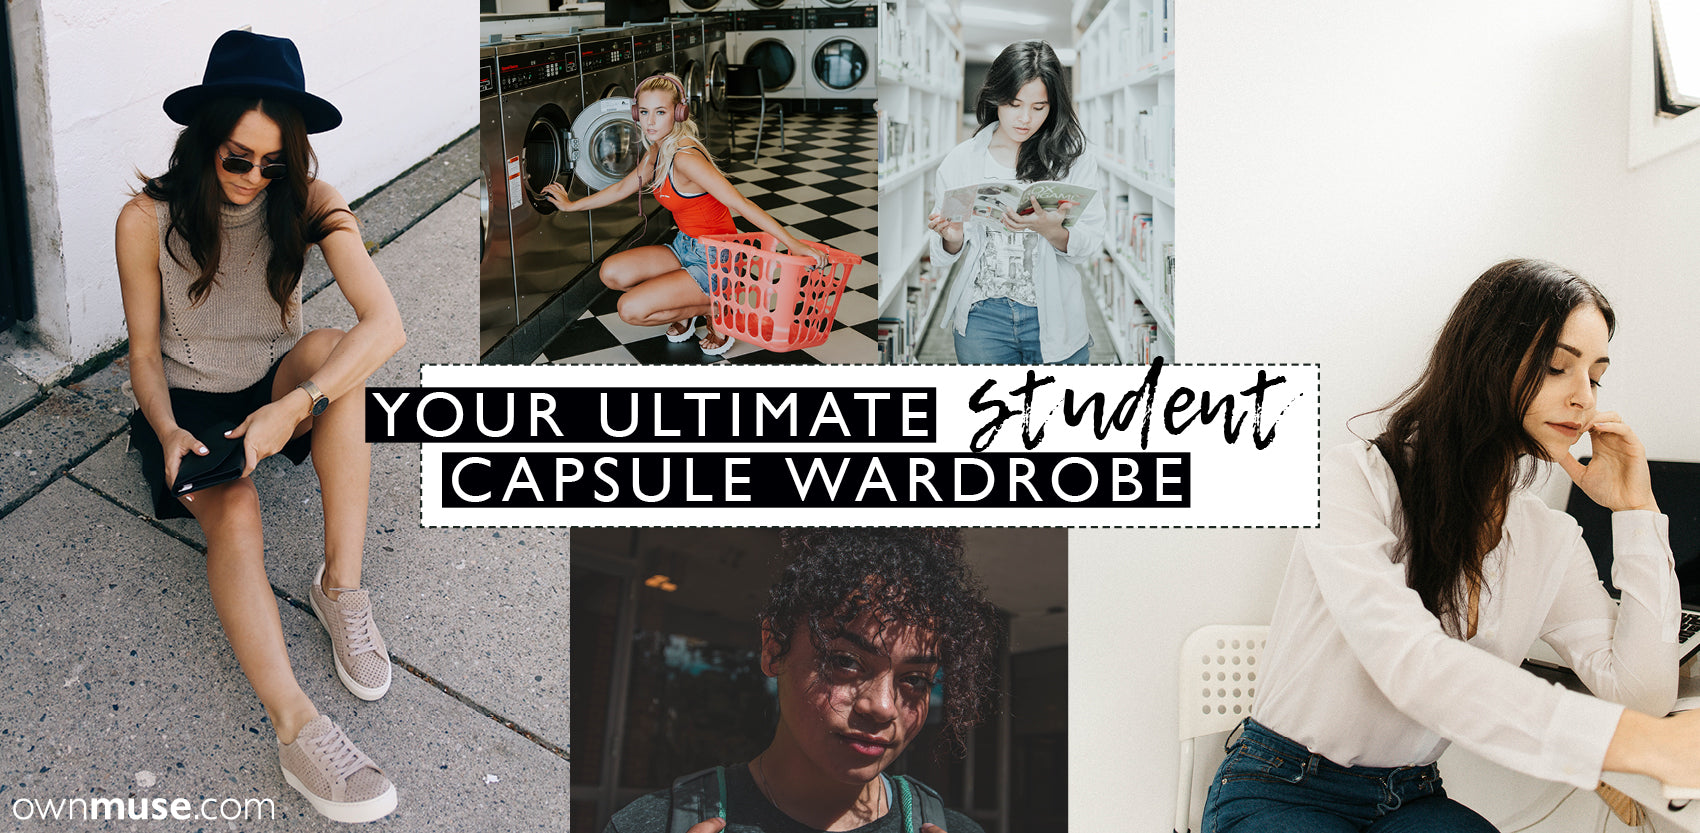 Student collage uni - Capsule wardrobe fashion style essentials